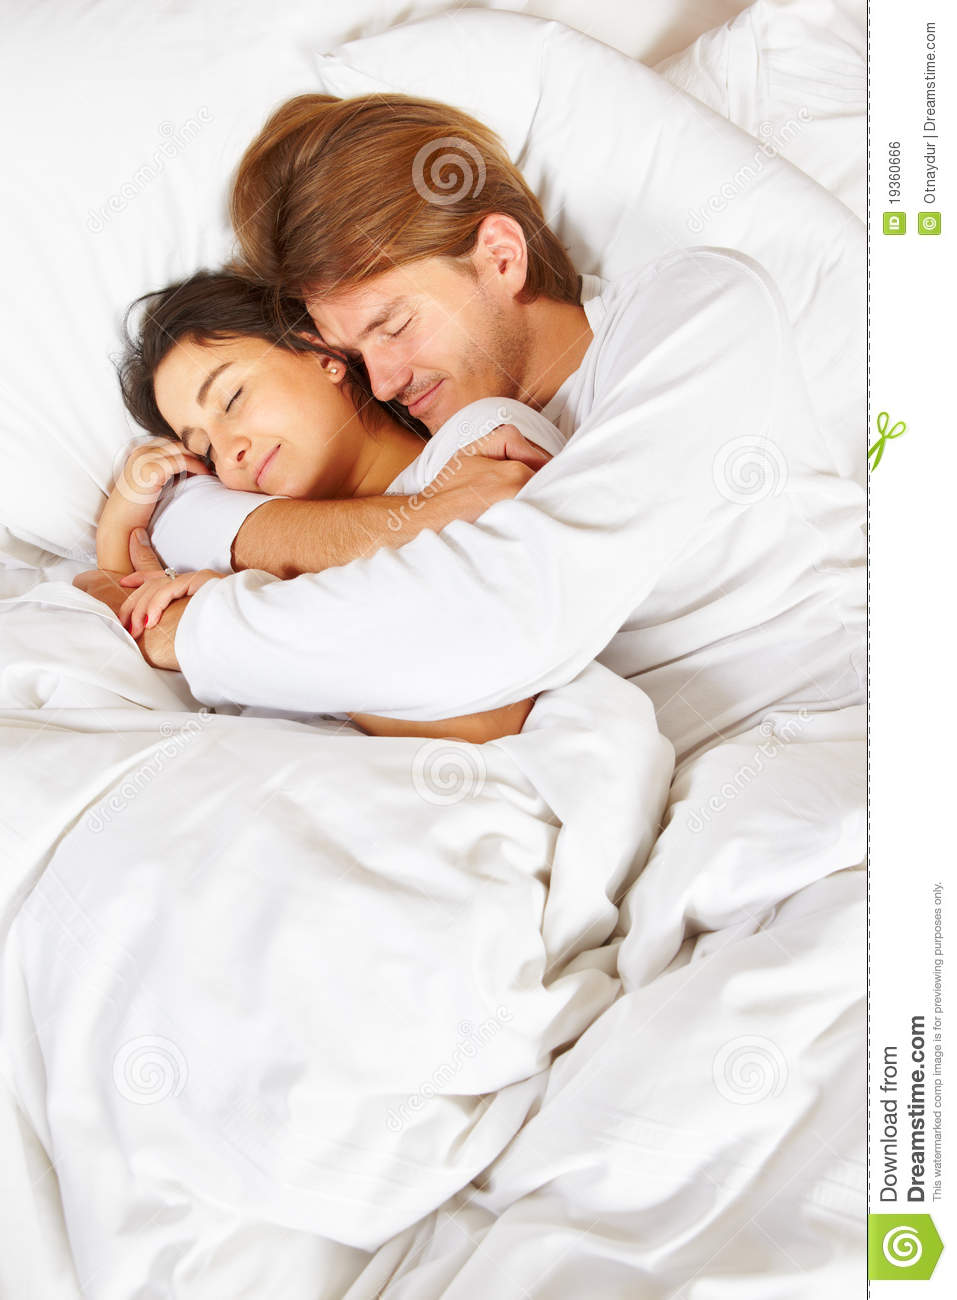 Pin by tempress love on romantic pinterest for Love pictures in bed